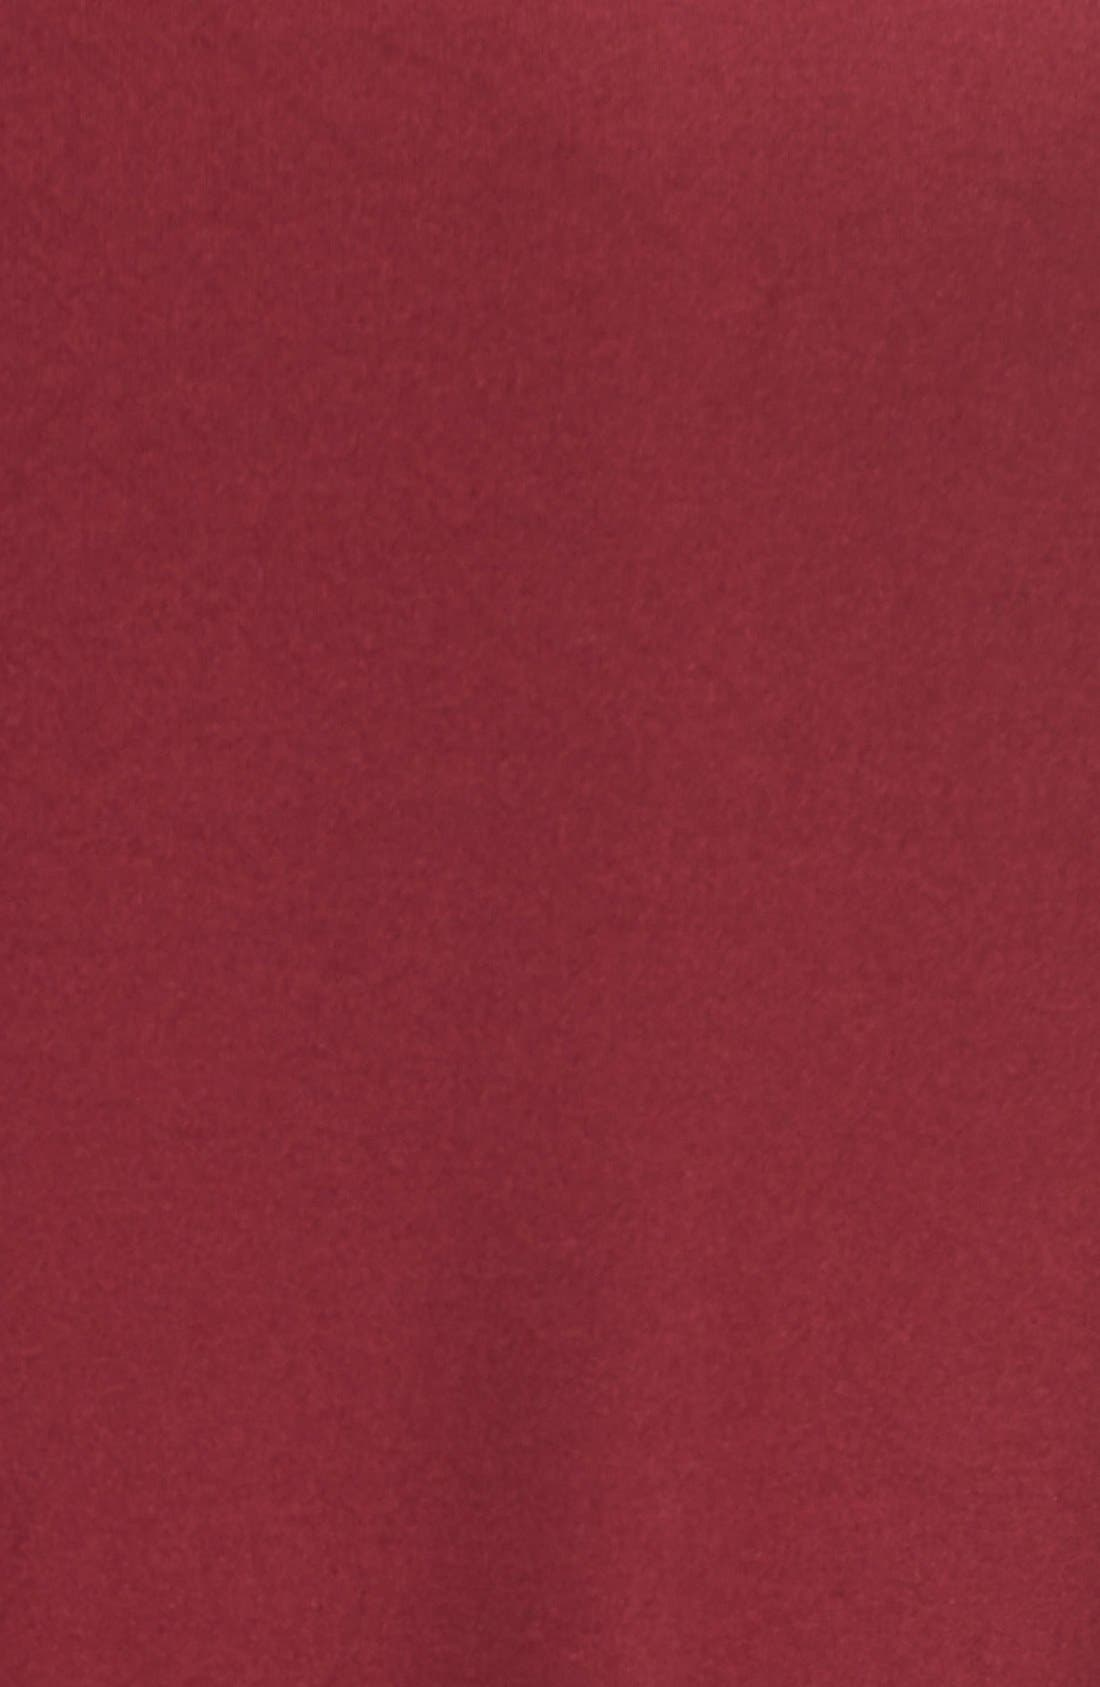 Butter High/Low Top,                             Alternate thumbnail 6, color,                             Burgundy